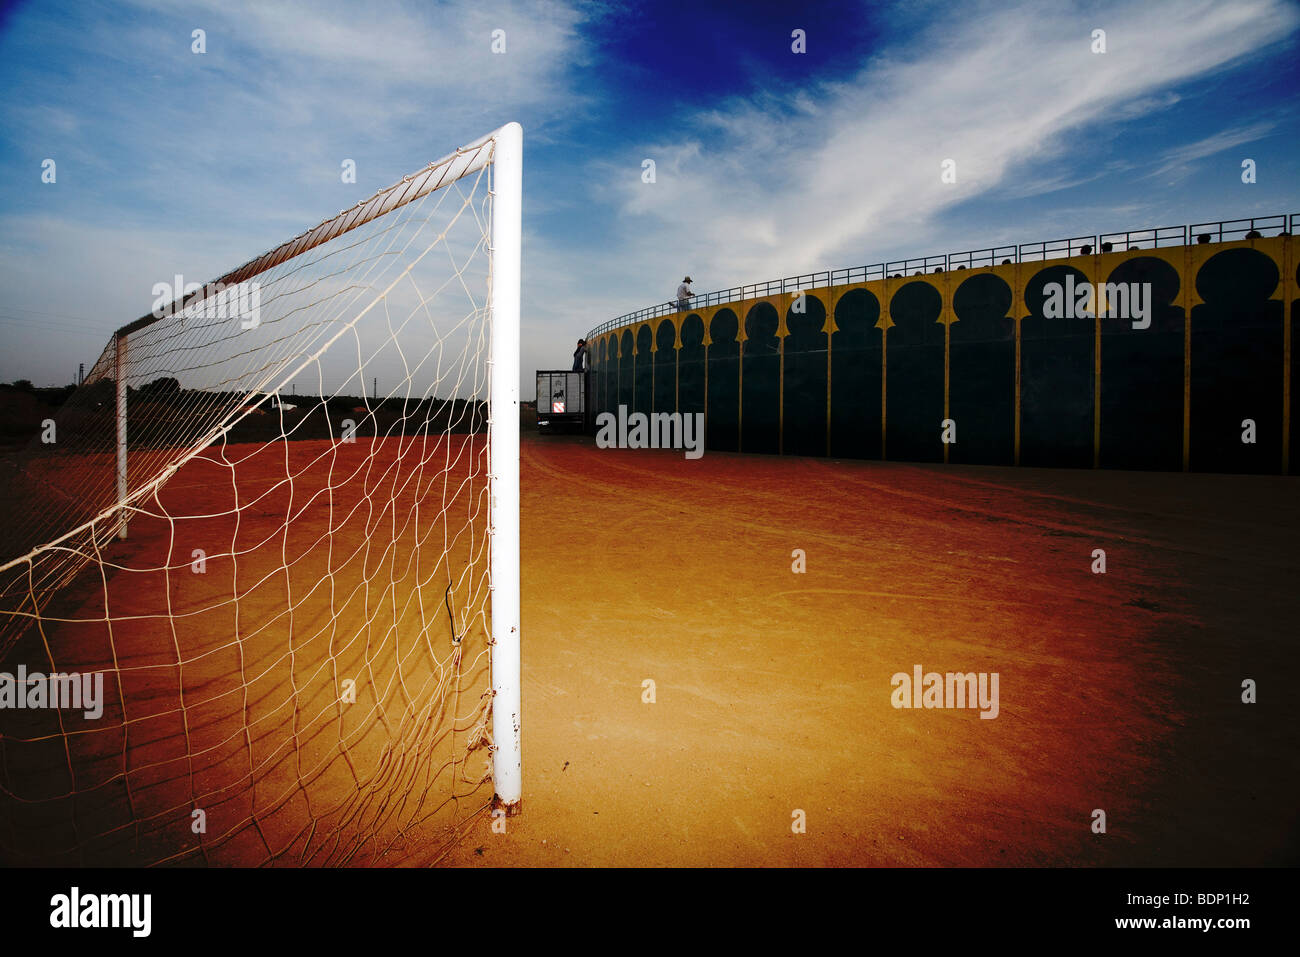 Typical Spanish: a temporary bullring on a football field - Stock Image